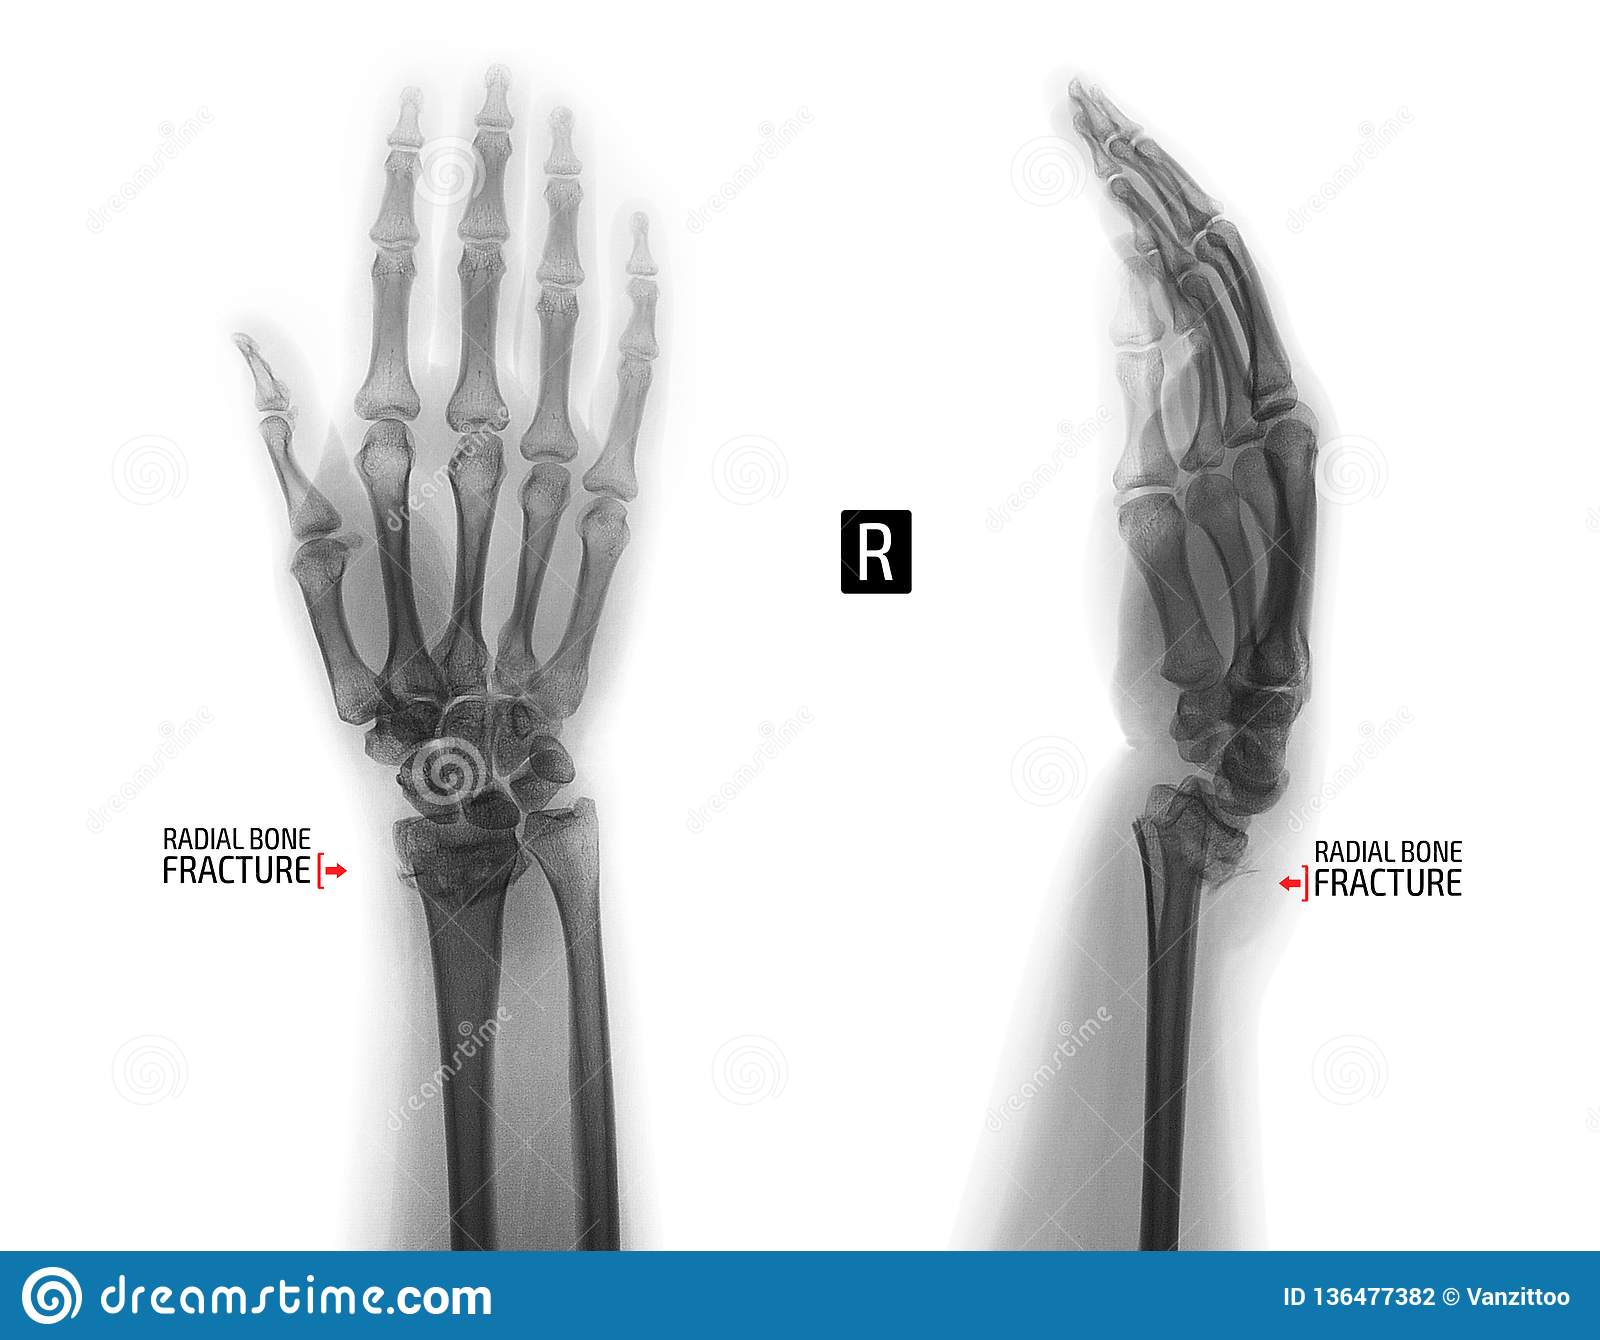 X-ray Of The Wrist Joint  Fracture Of The Radius  Negative